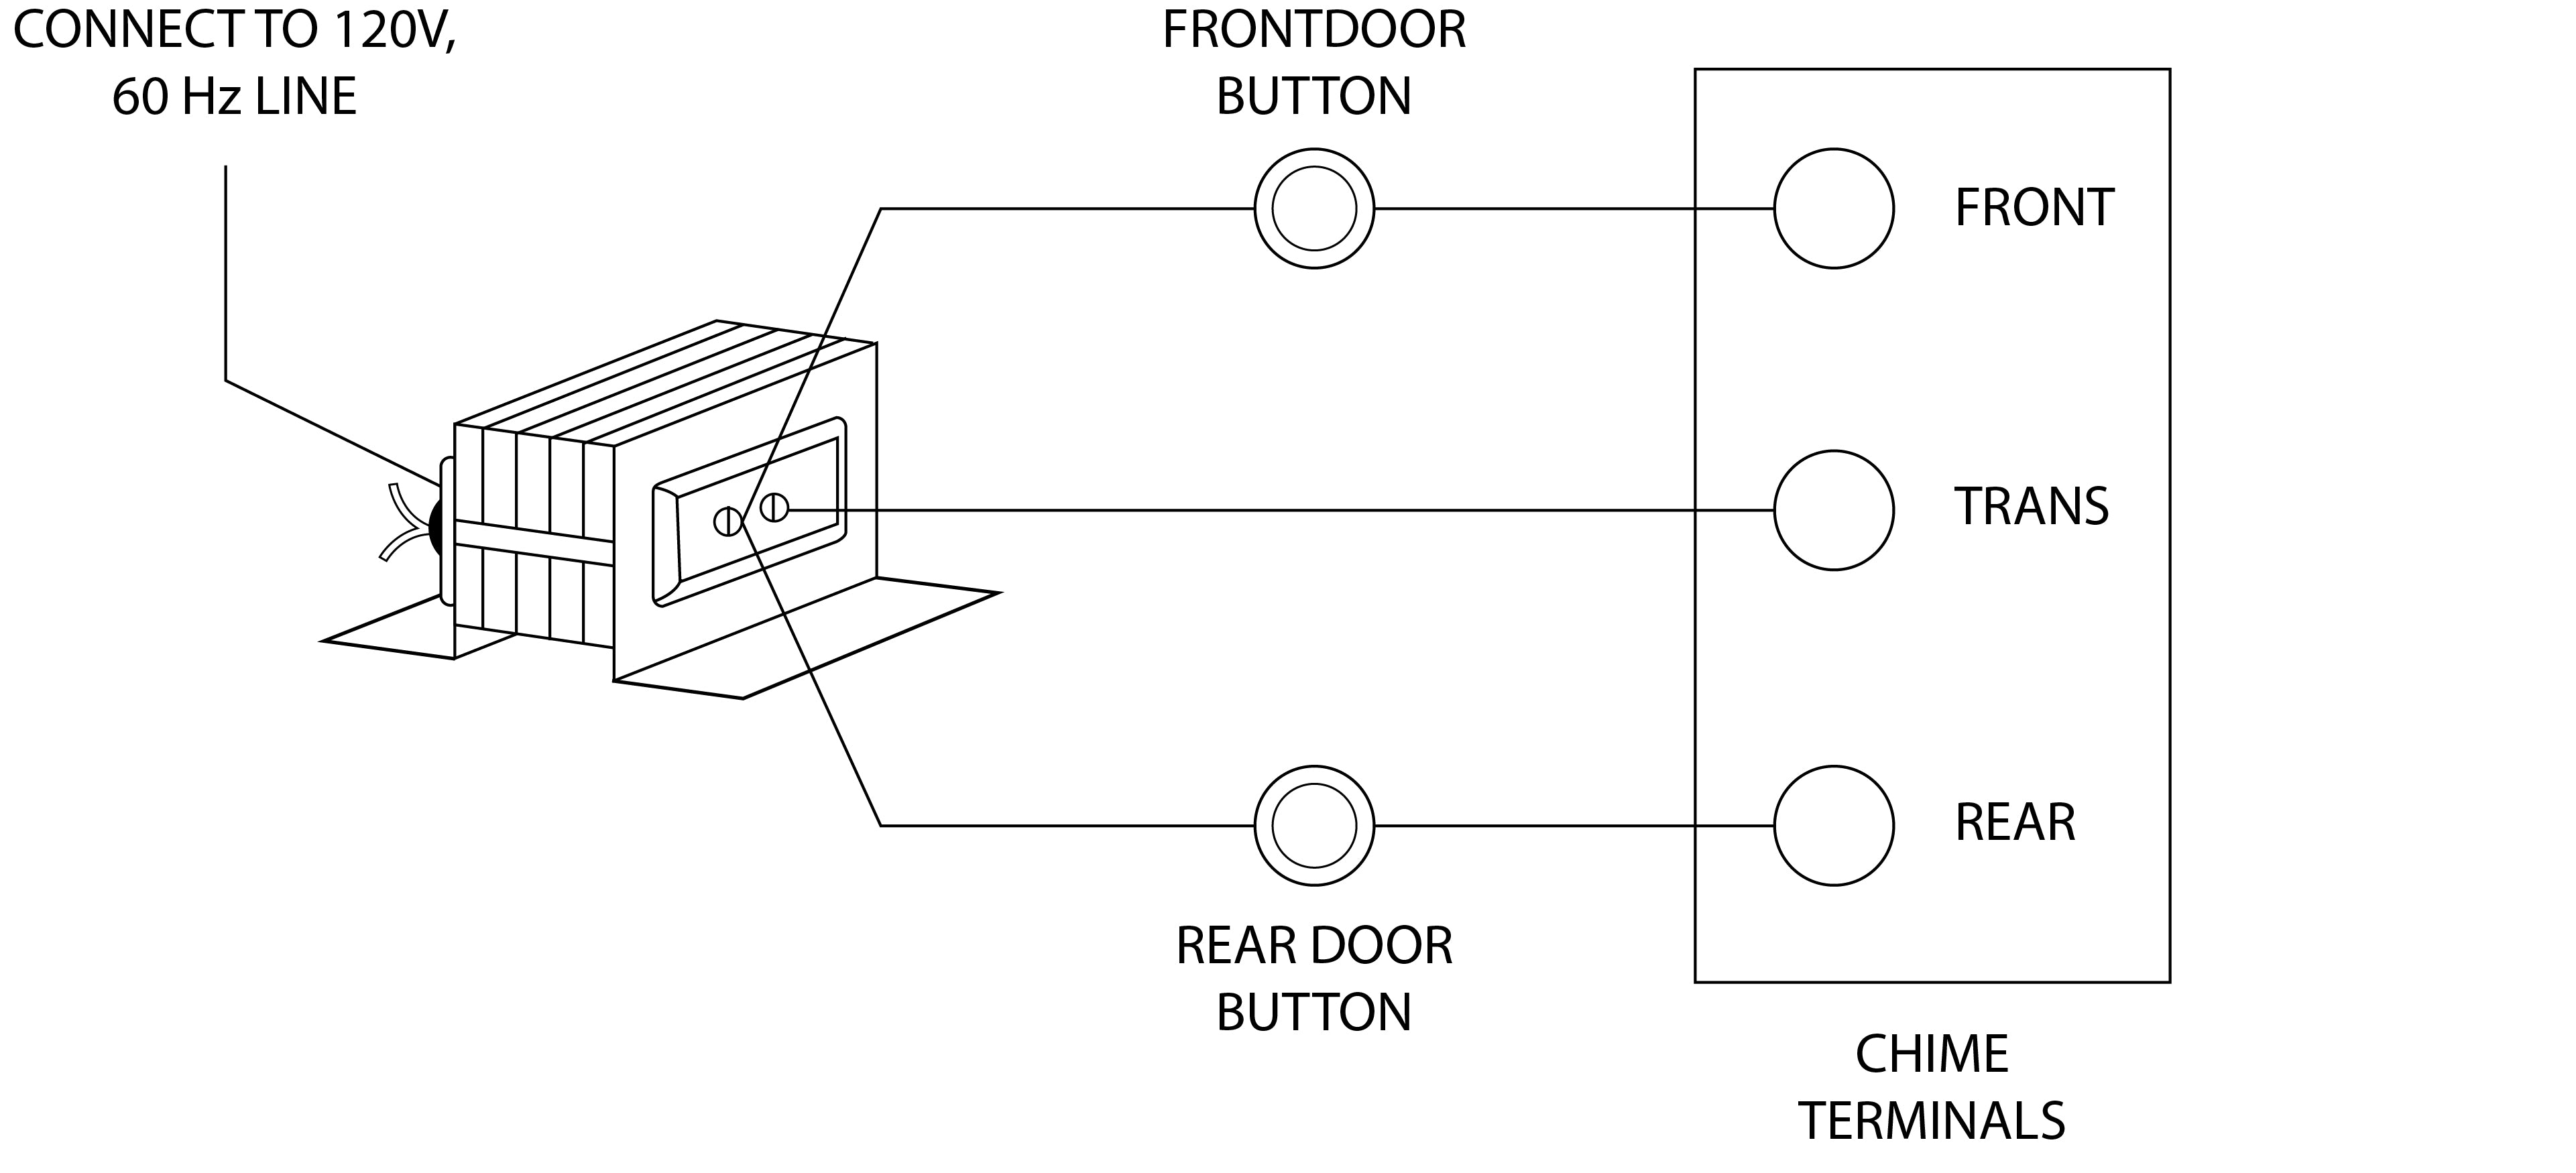 wiring diagram ring doorbell wiring diagram doorbell transformer diagram \u2022 wiring Doorbell Transformer Wiring Diagram at soozxer.org